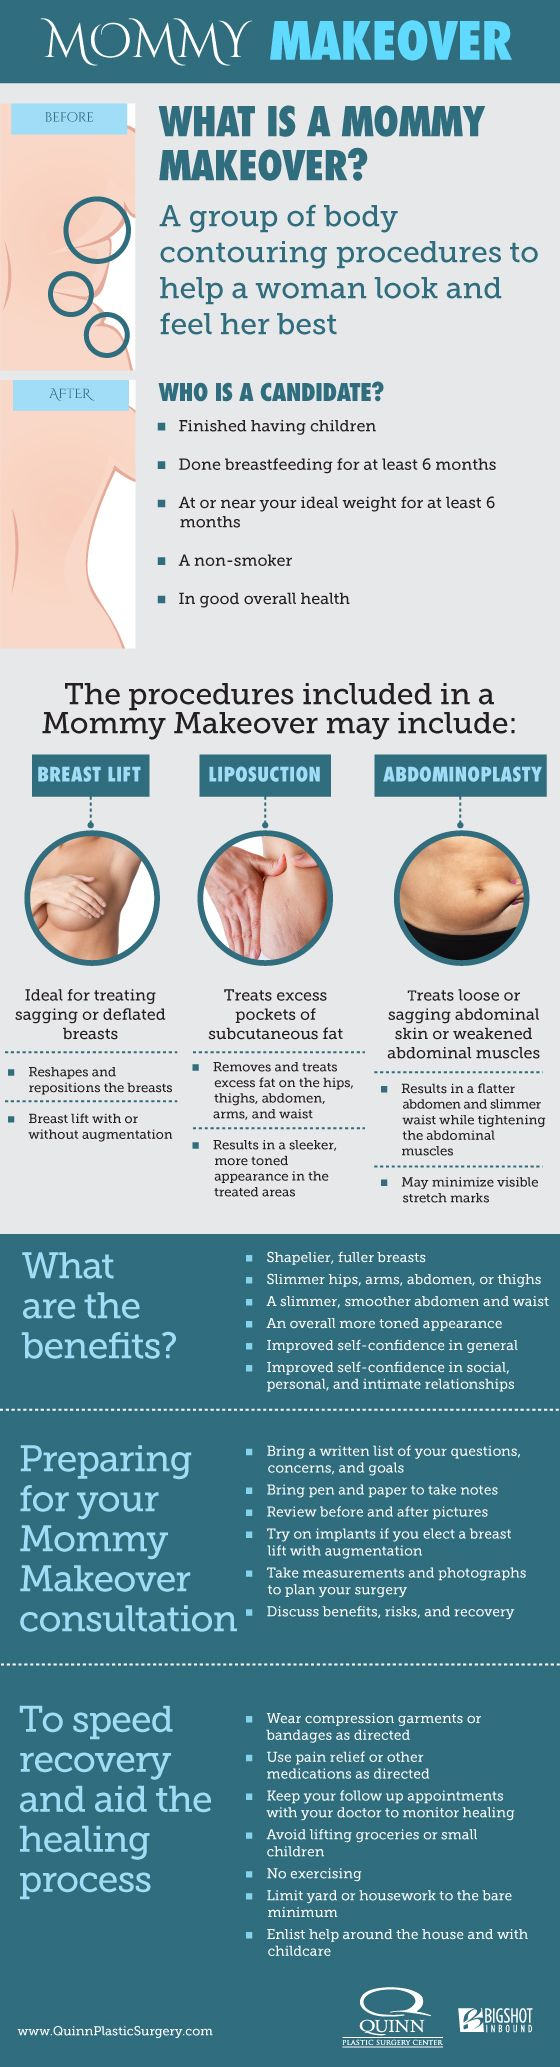 88 best Breast Surgery images on Pinterest | Plastic surgery, Bad ...